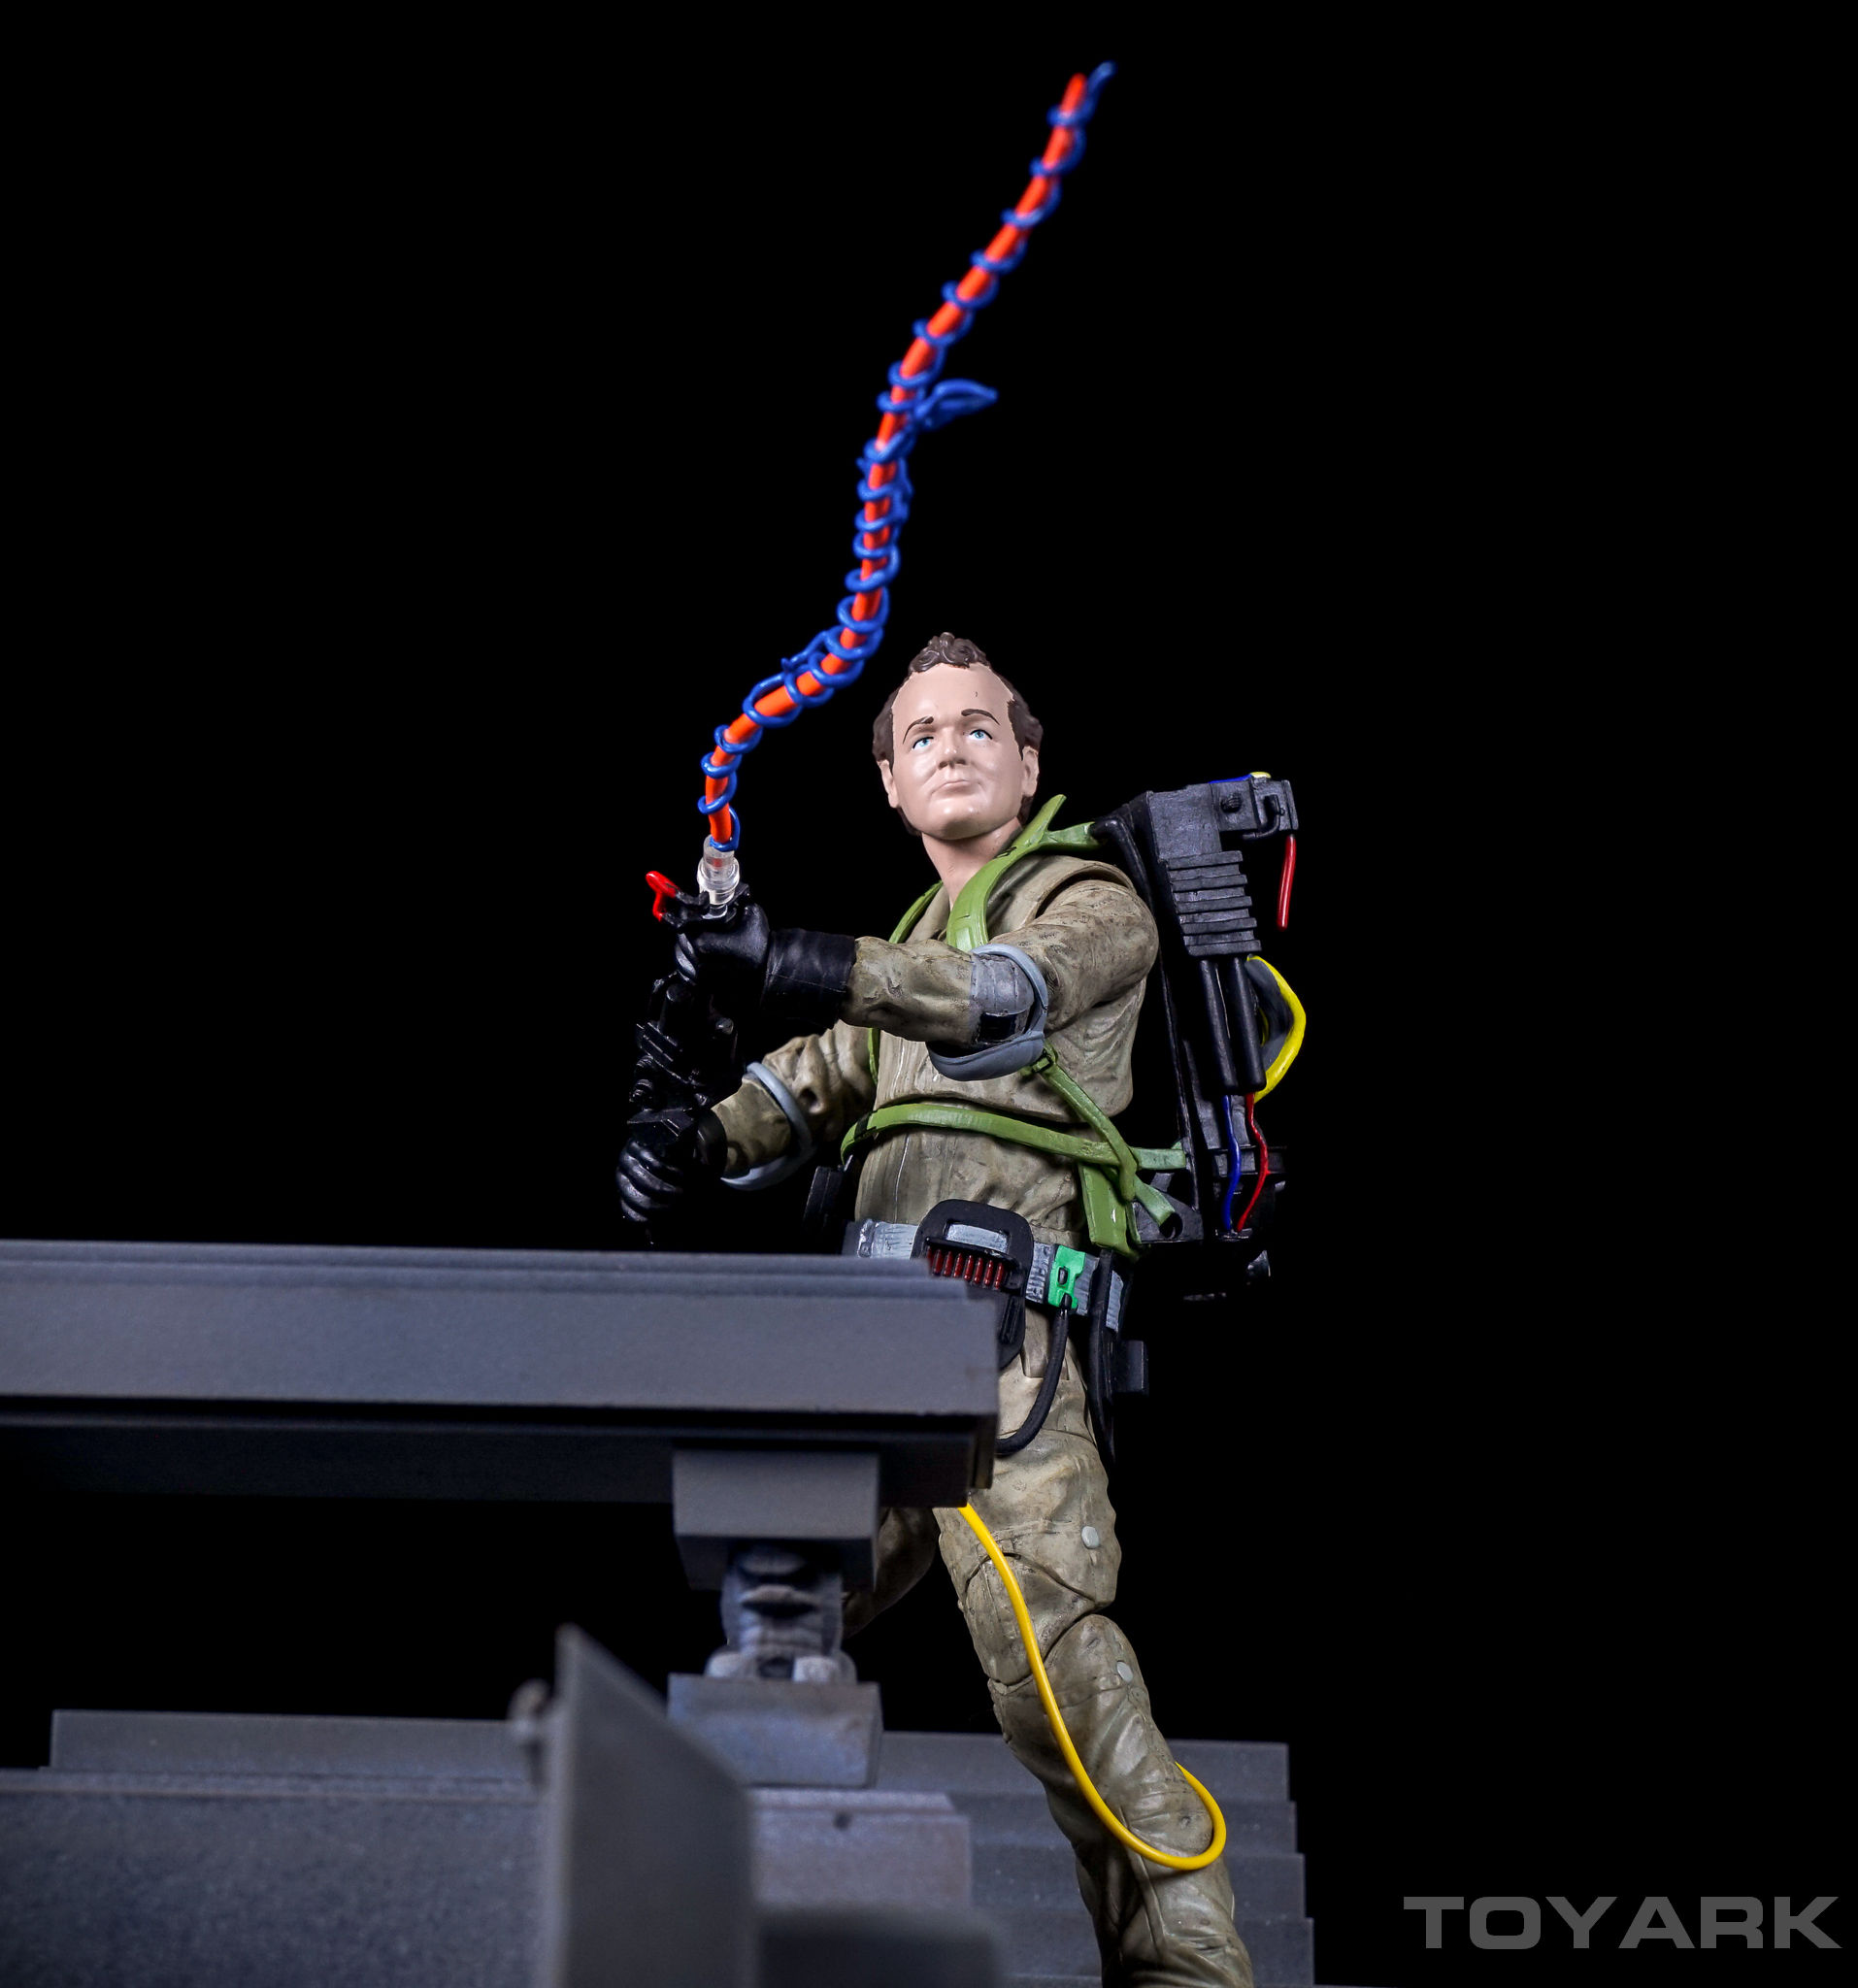 http://news.toyark.com/wp-content/uploads/sites/4/2016/05/DST-Ghostbusters-Select-Figures-061.jpg